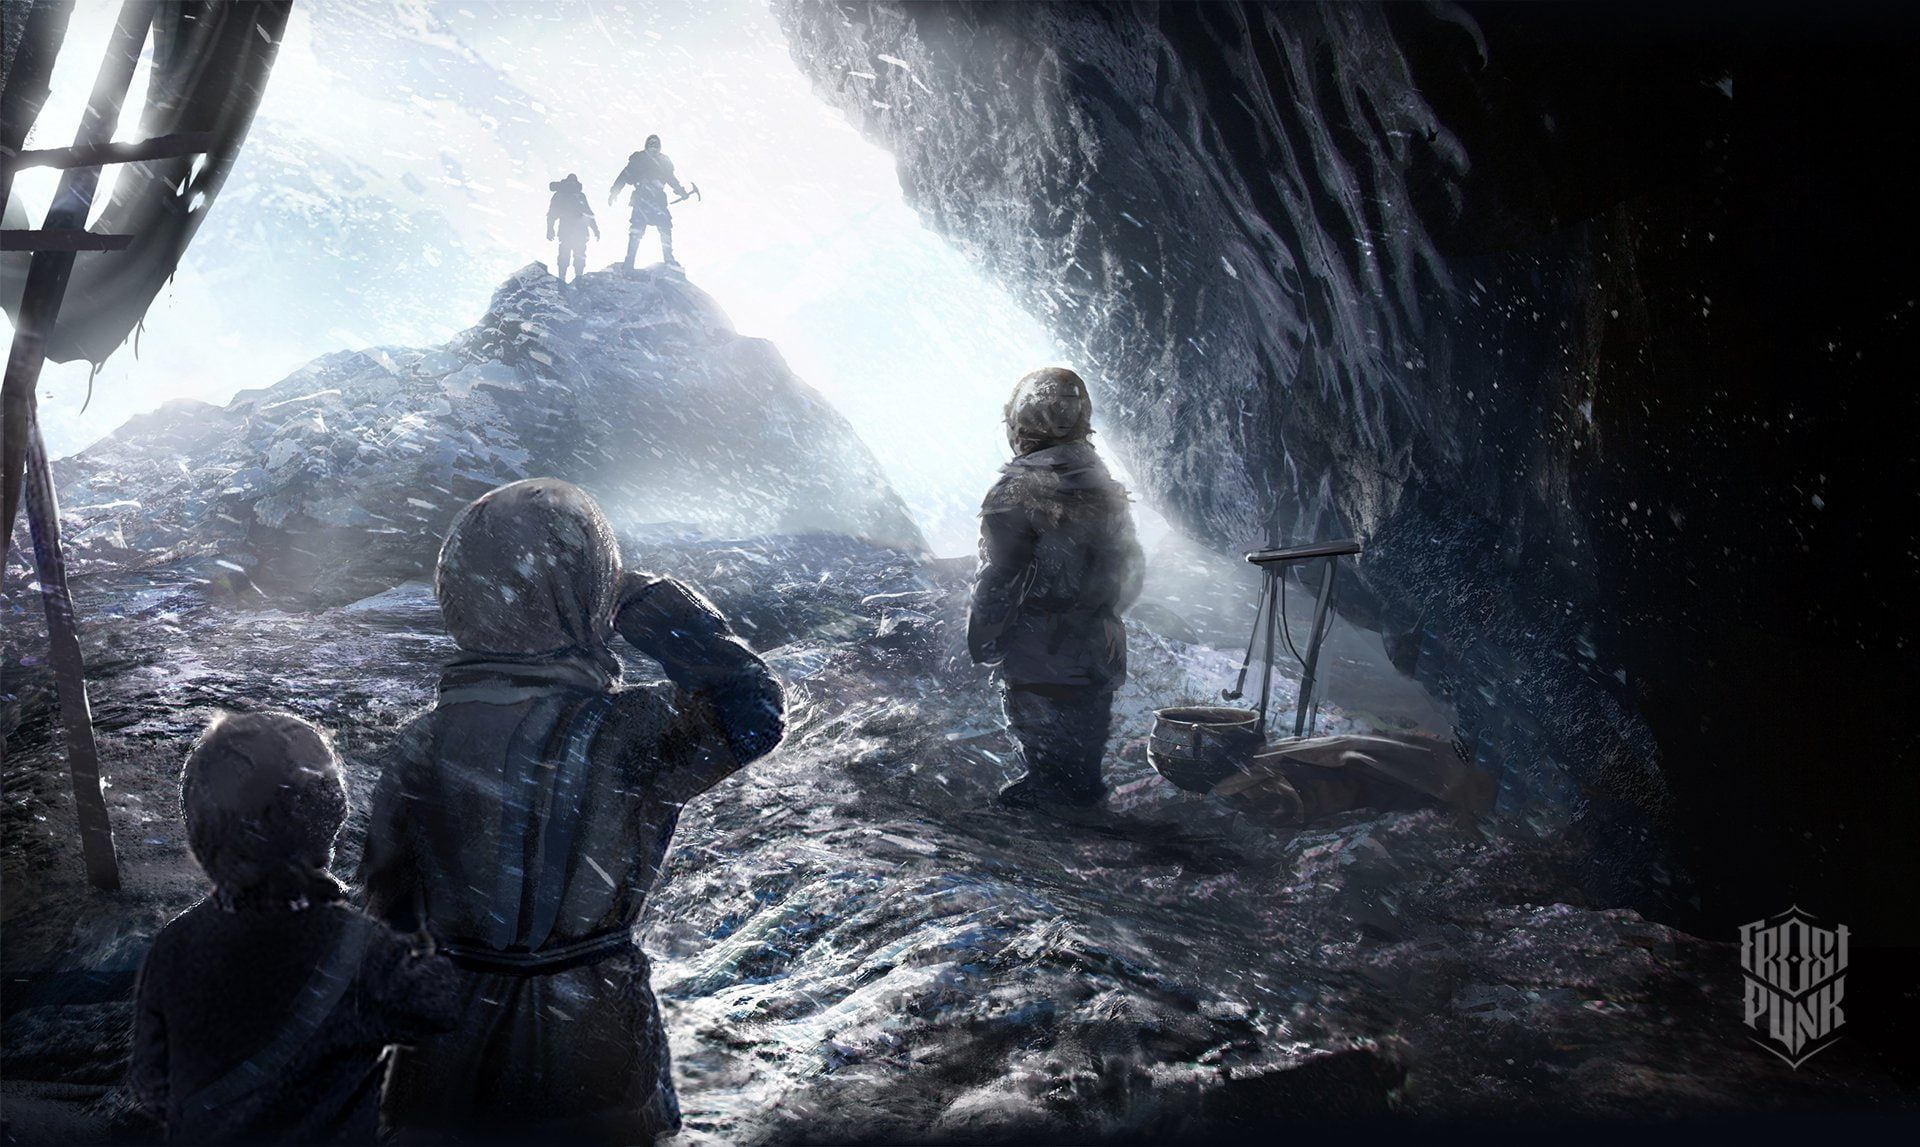 Frostpunk Video Games Video Game Art Games Art Snow Artwork 1080p Wallpaper Hdwallpaper Desktop